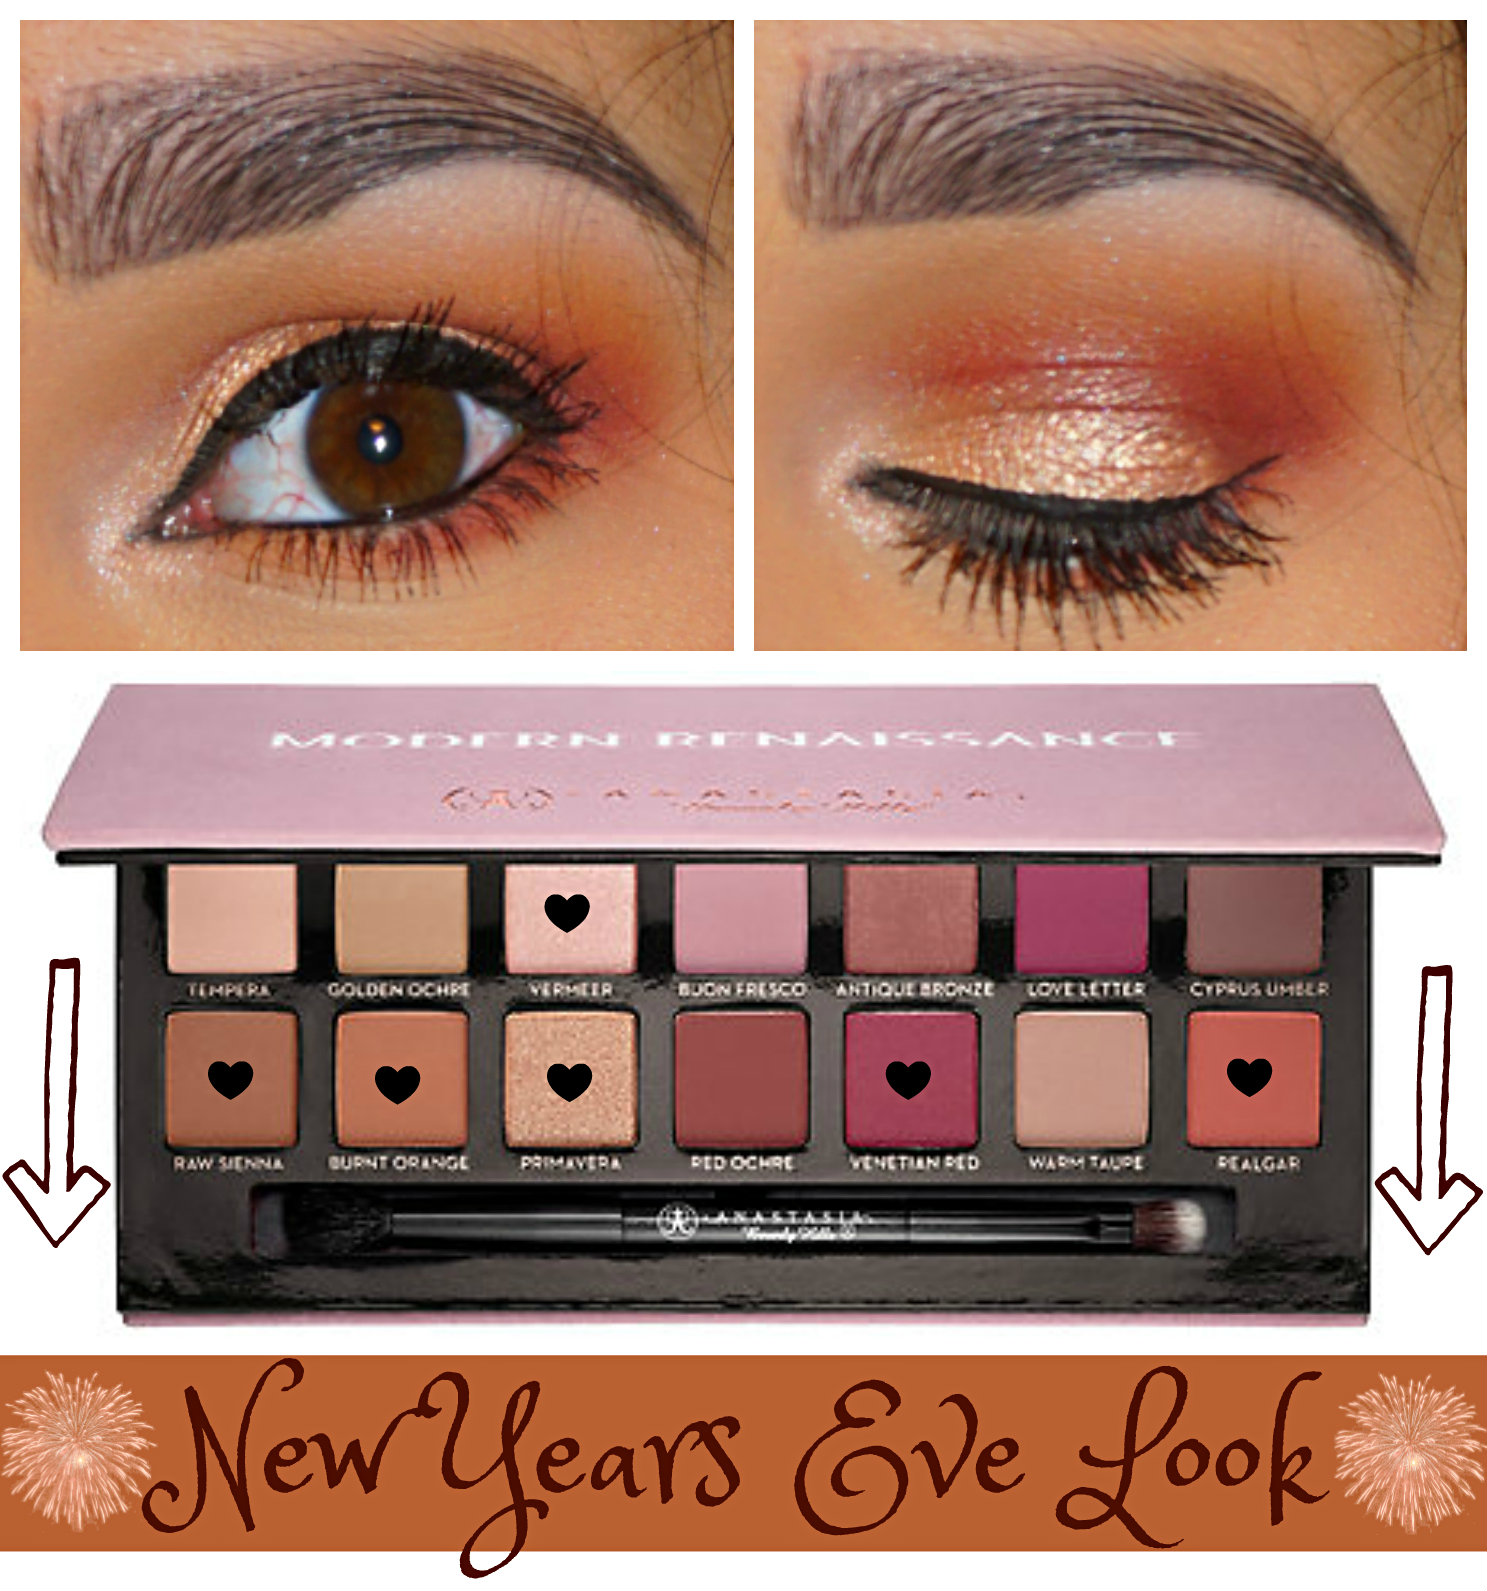 makeup fashion royalty new years eve makeup look. Black Bedroom Furniture Sets. Home Design Ideas